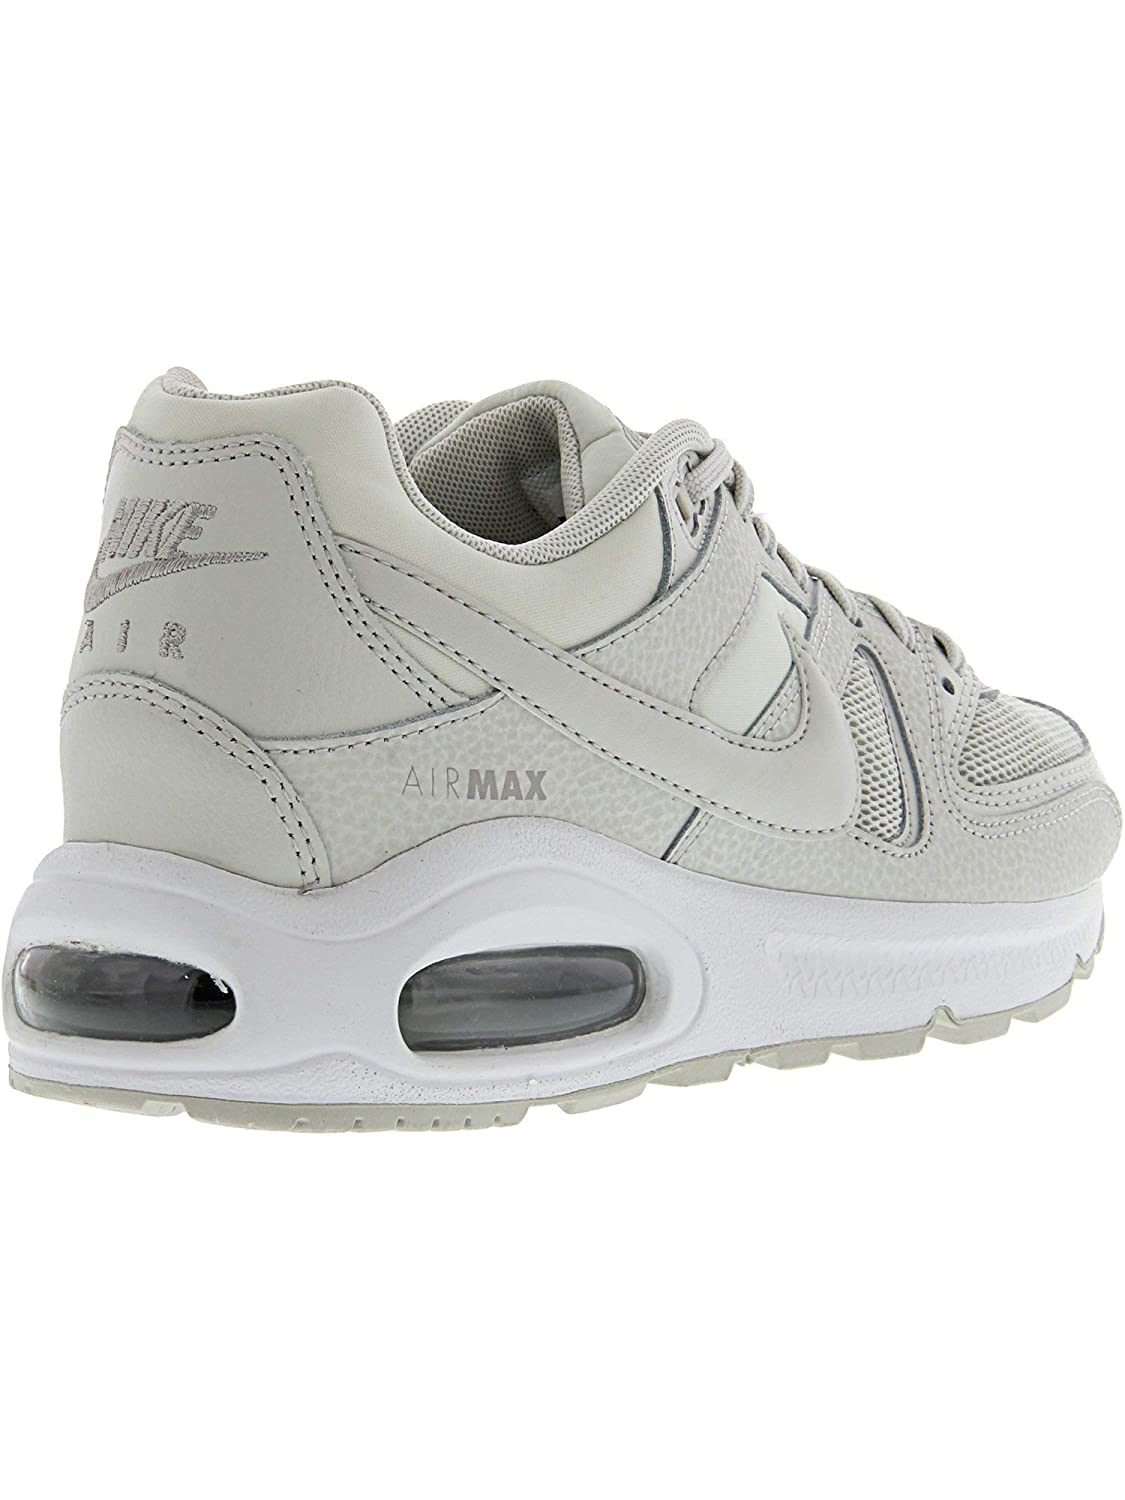 WMNS Nike Air Max Command Women's Running Shoes 397690 018